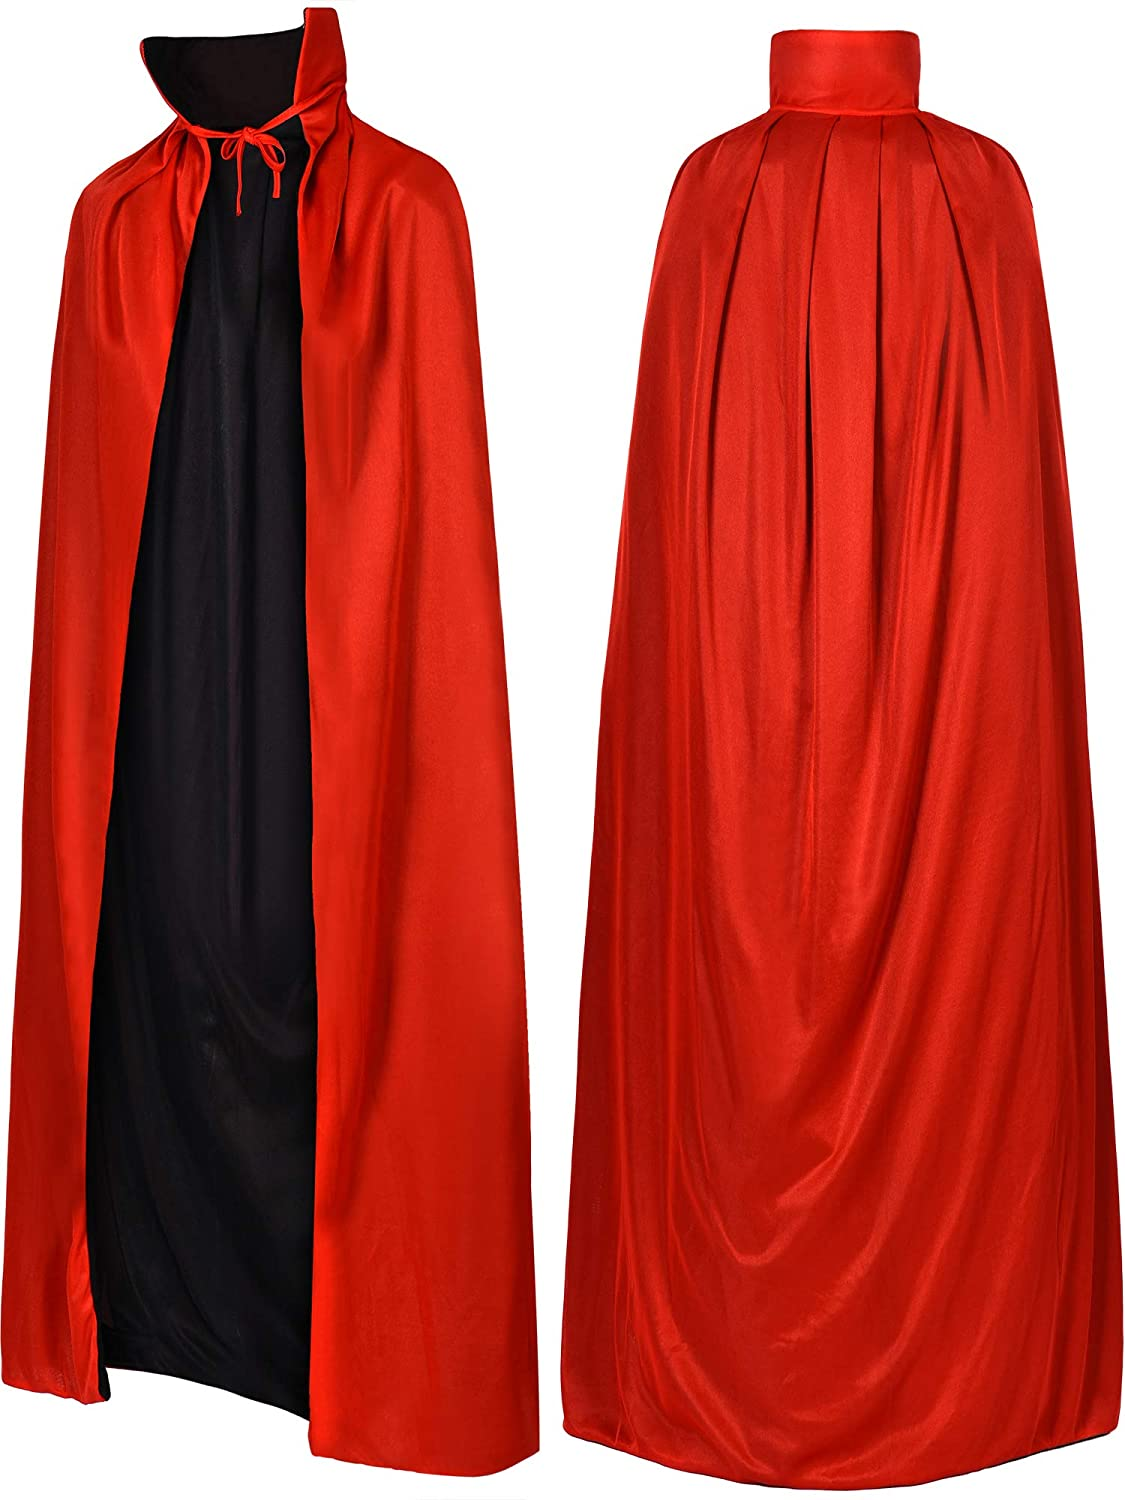 Tatuo Unisex Vampire Cloak Vampire Cape Reversible Cape for Halloween Themed Party Adult Cloak Supplies, 55 Inches Length